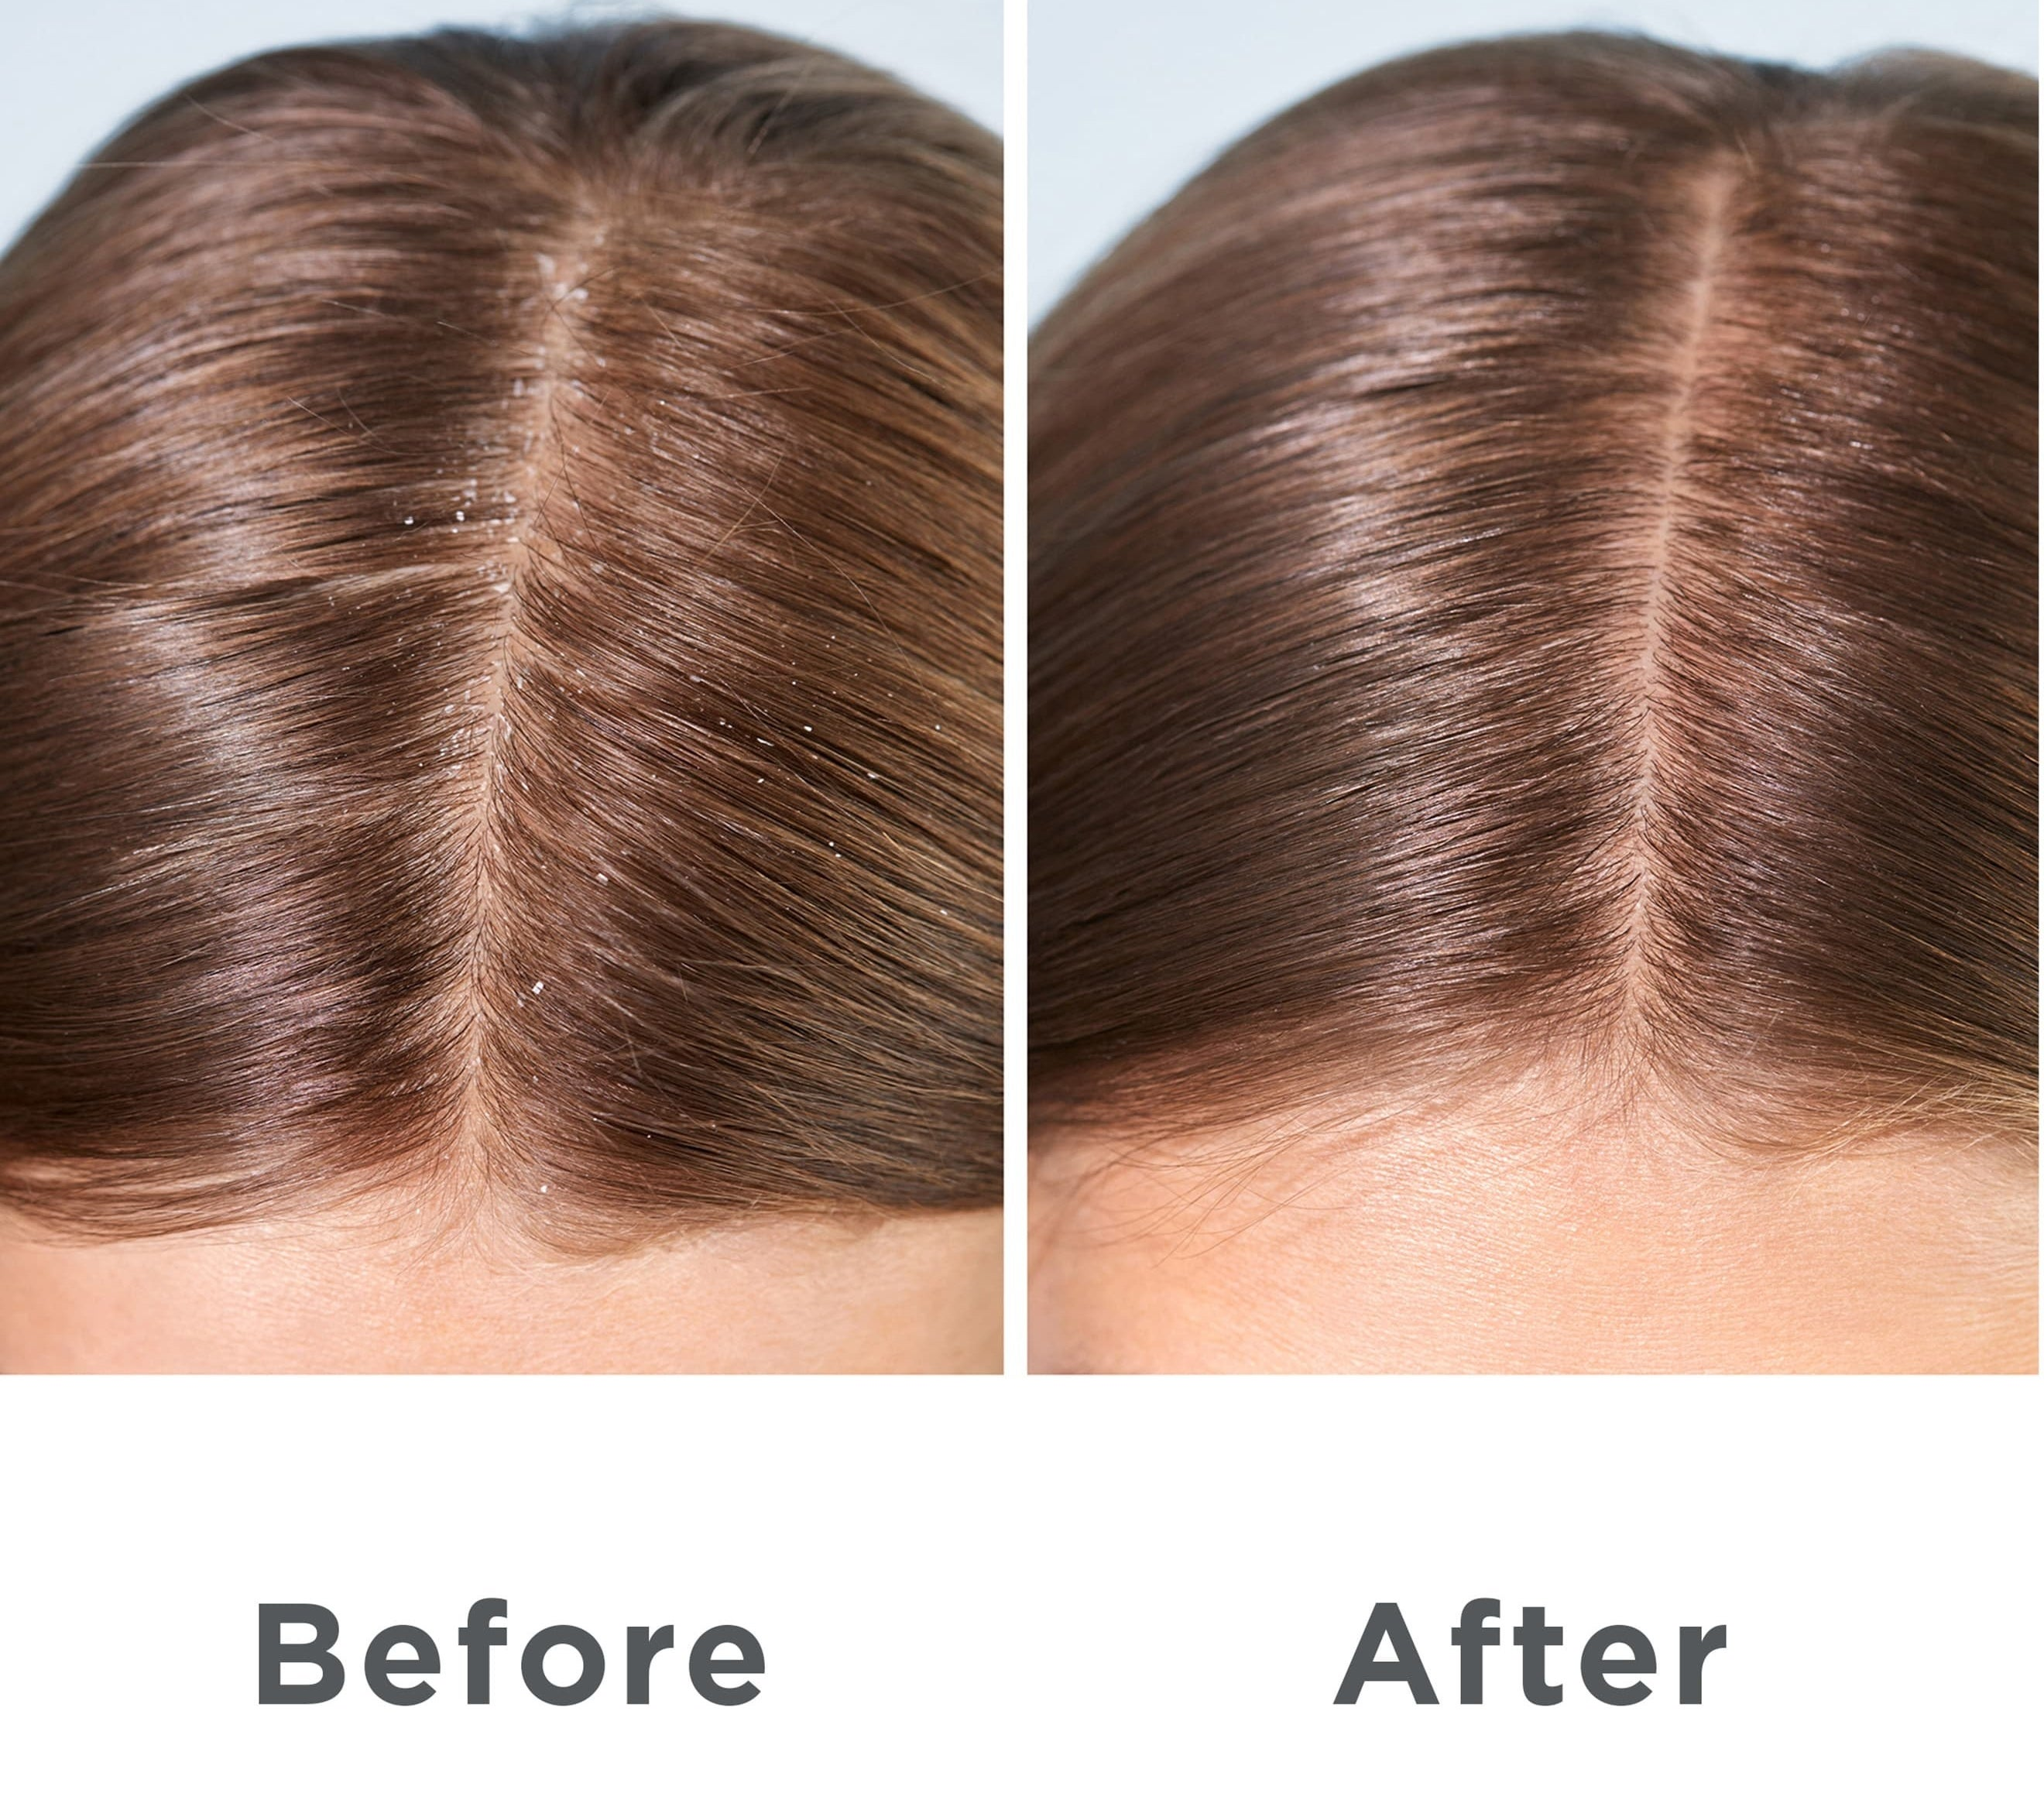 A before and after side-by-side of a model with dandruff and then after using the product the dandruff is gone